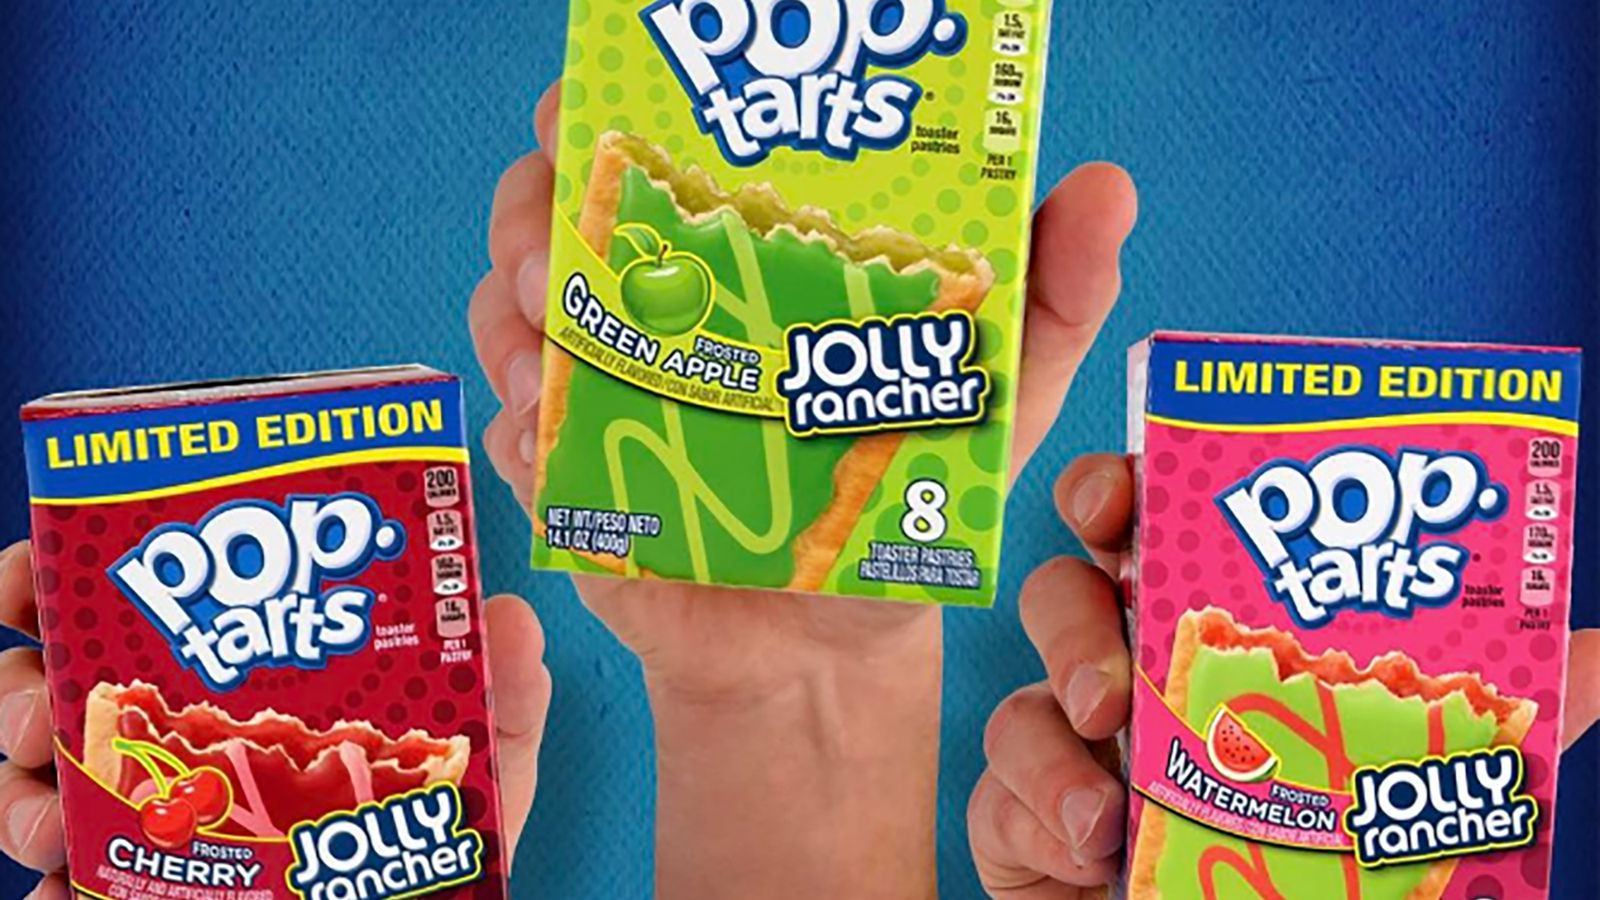 Pop Tarts And Jolly Ranchers Made A Food Baby That Will Rot Your Teeth